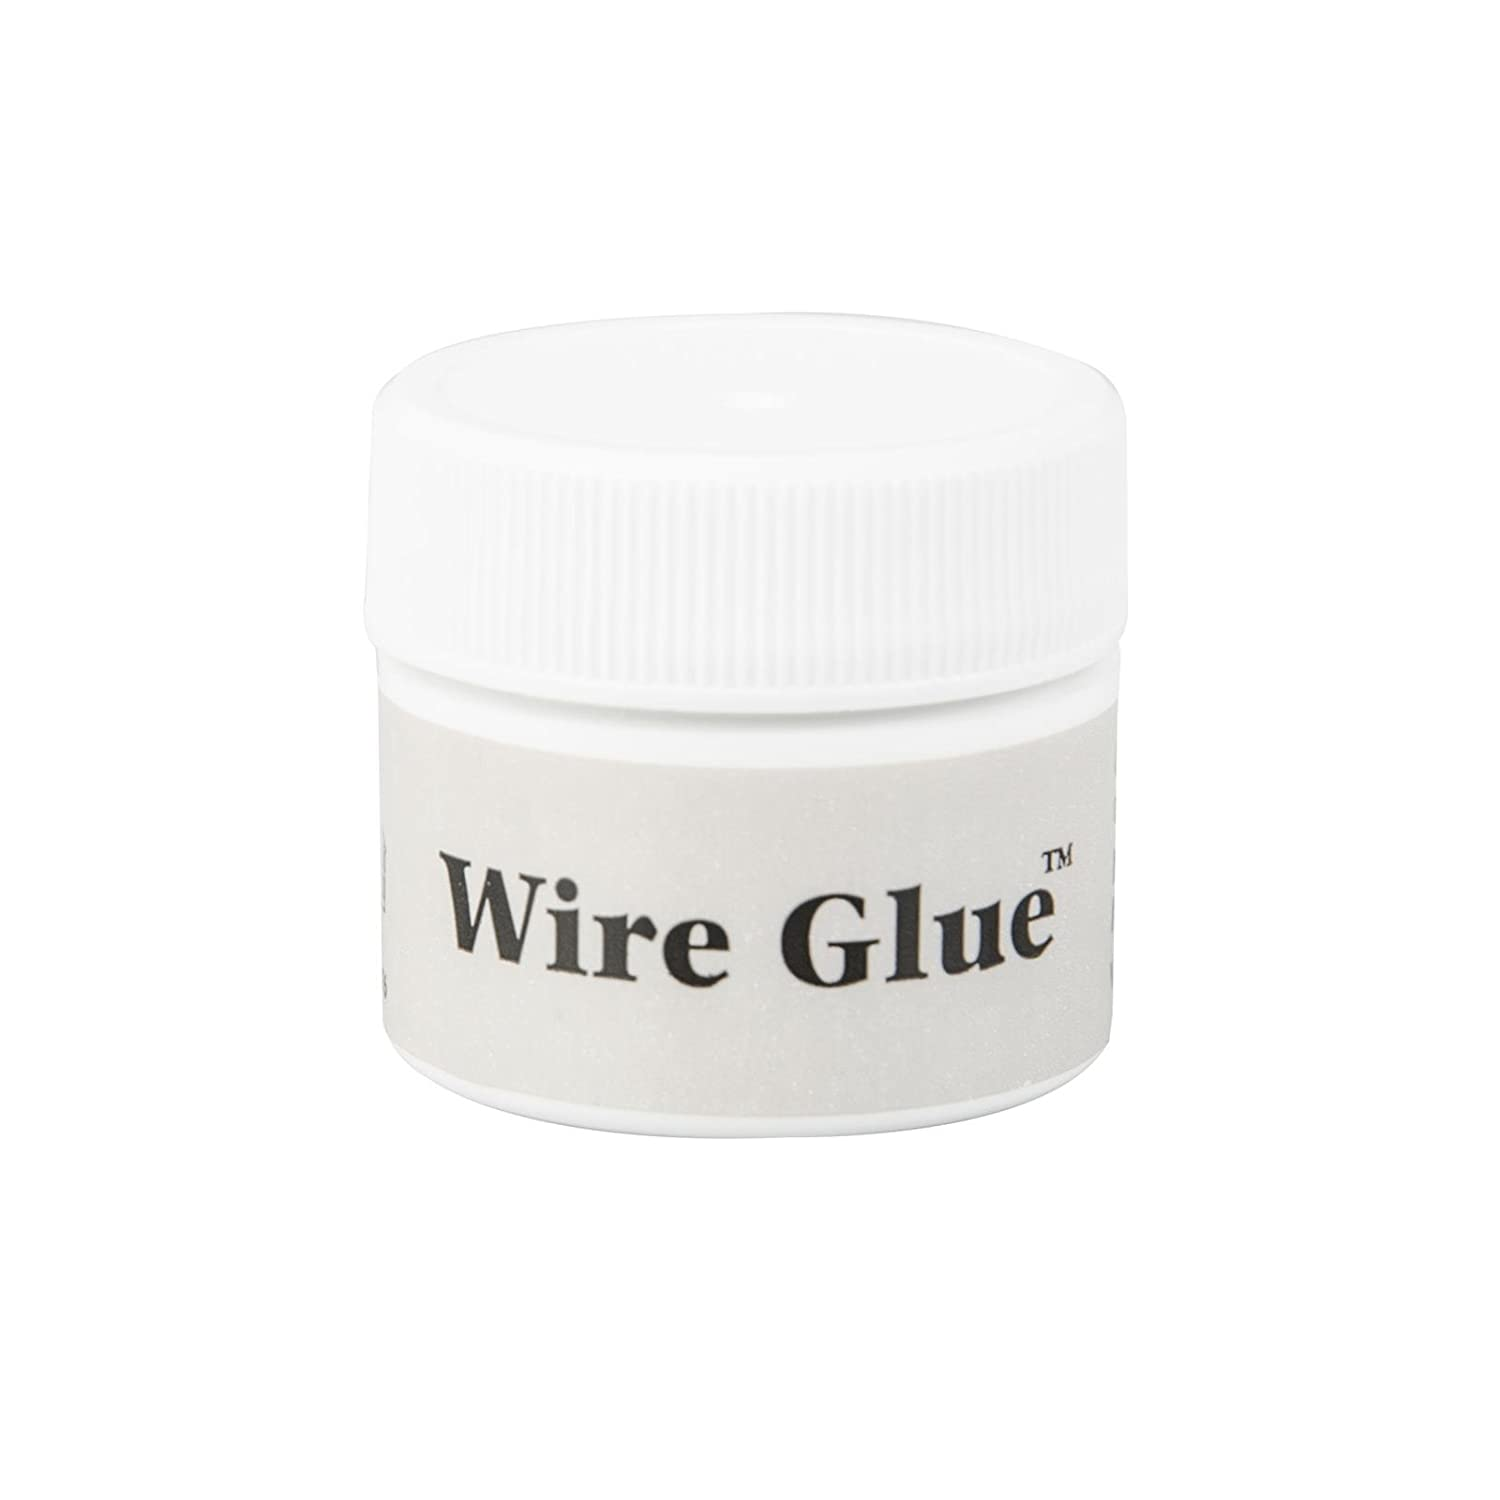 Conductive Wire Glue Paint No Soldering Iron Diy Power Supply White On Circuit Board Electrical Engineering Tools